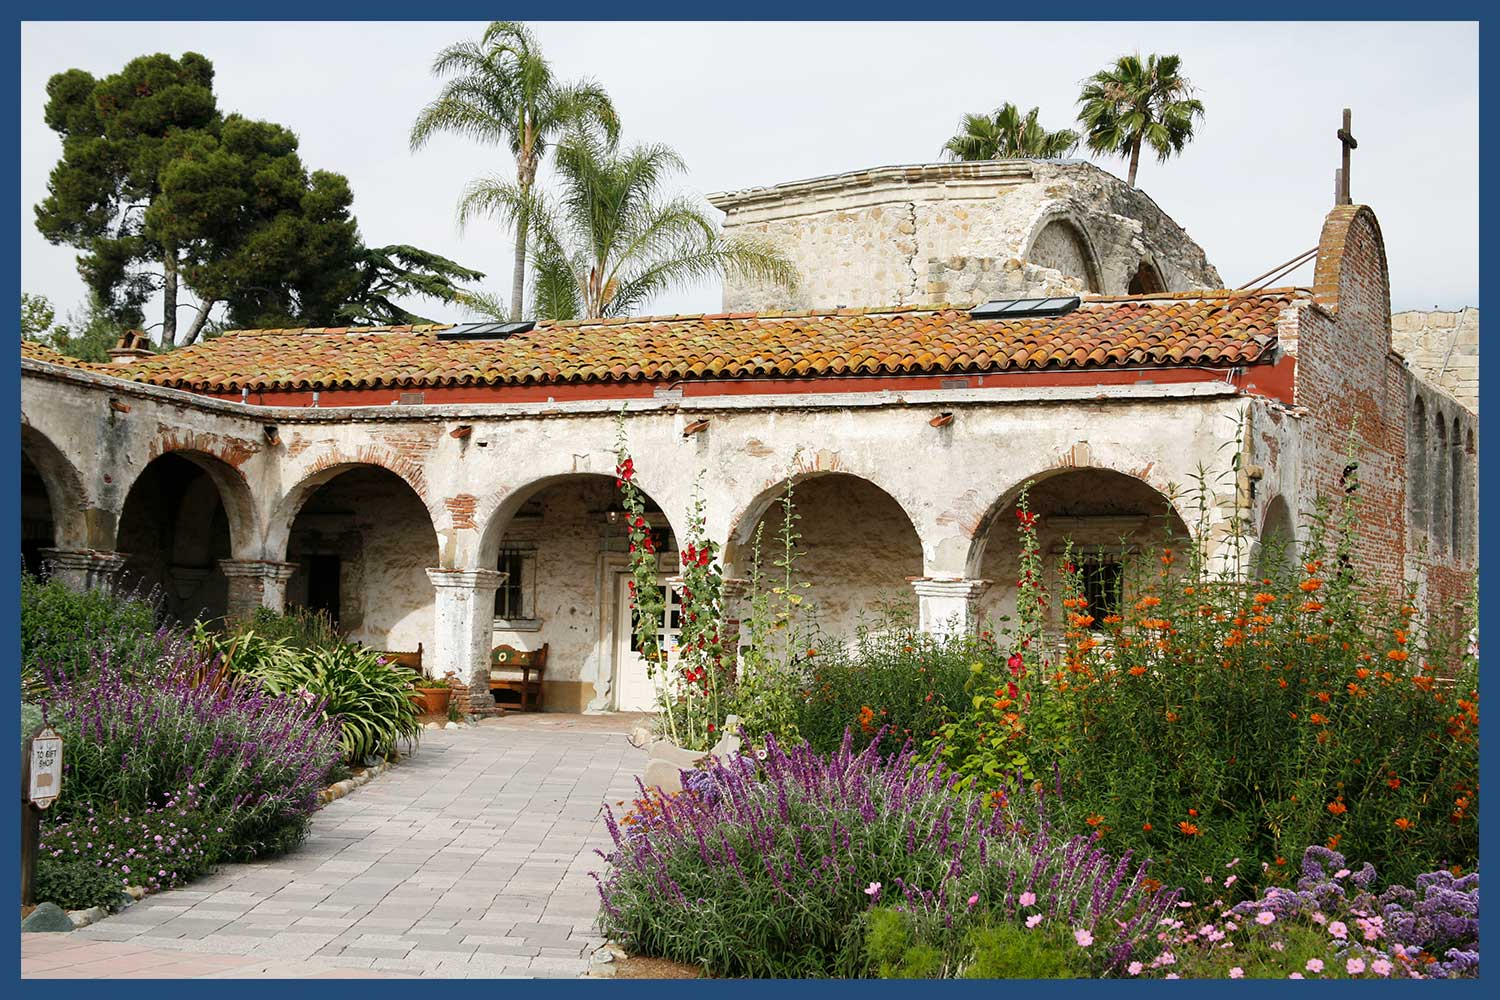 Mission San Juan Capistrano in California